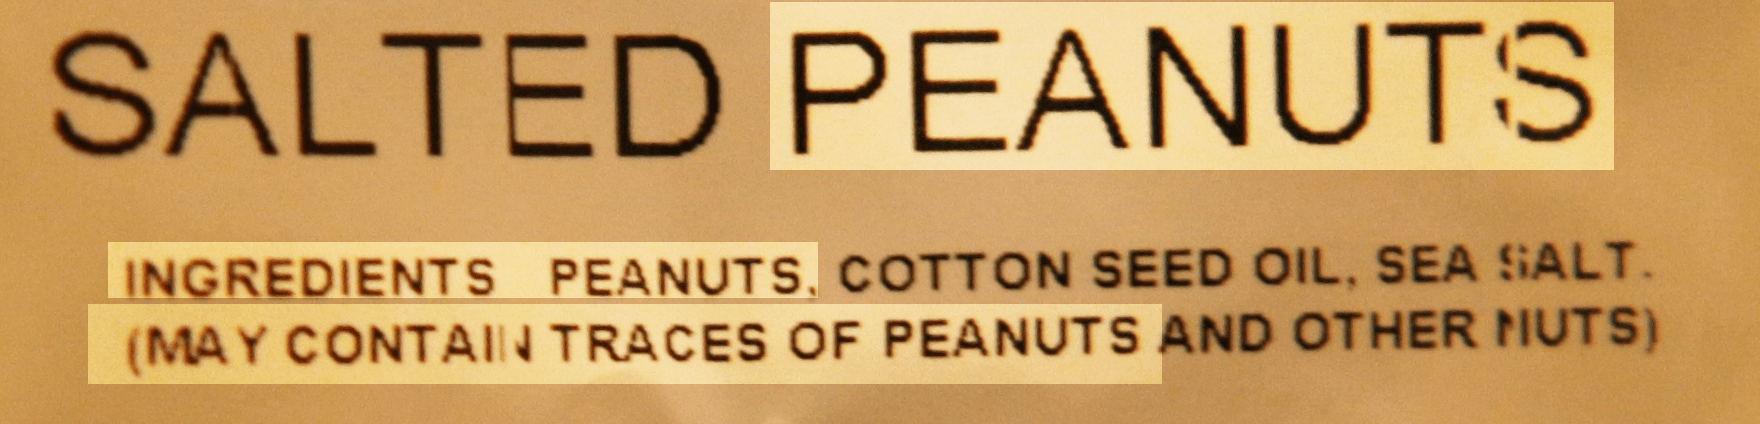 Peanuts May Contain Traces Of Peanuts